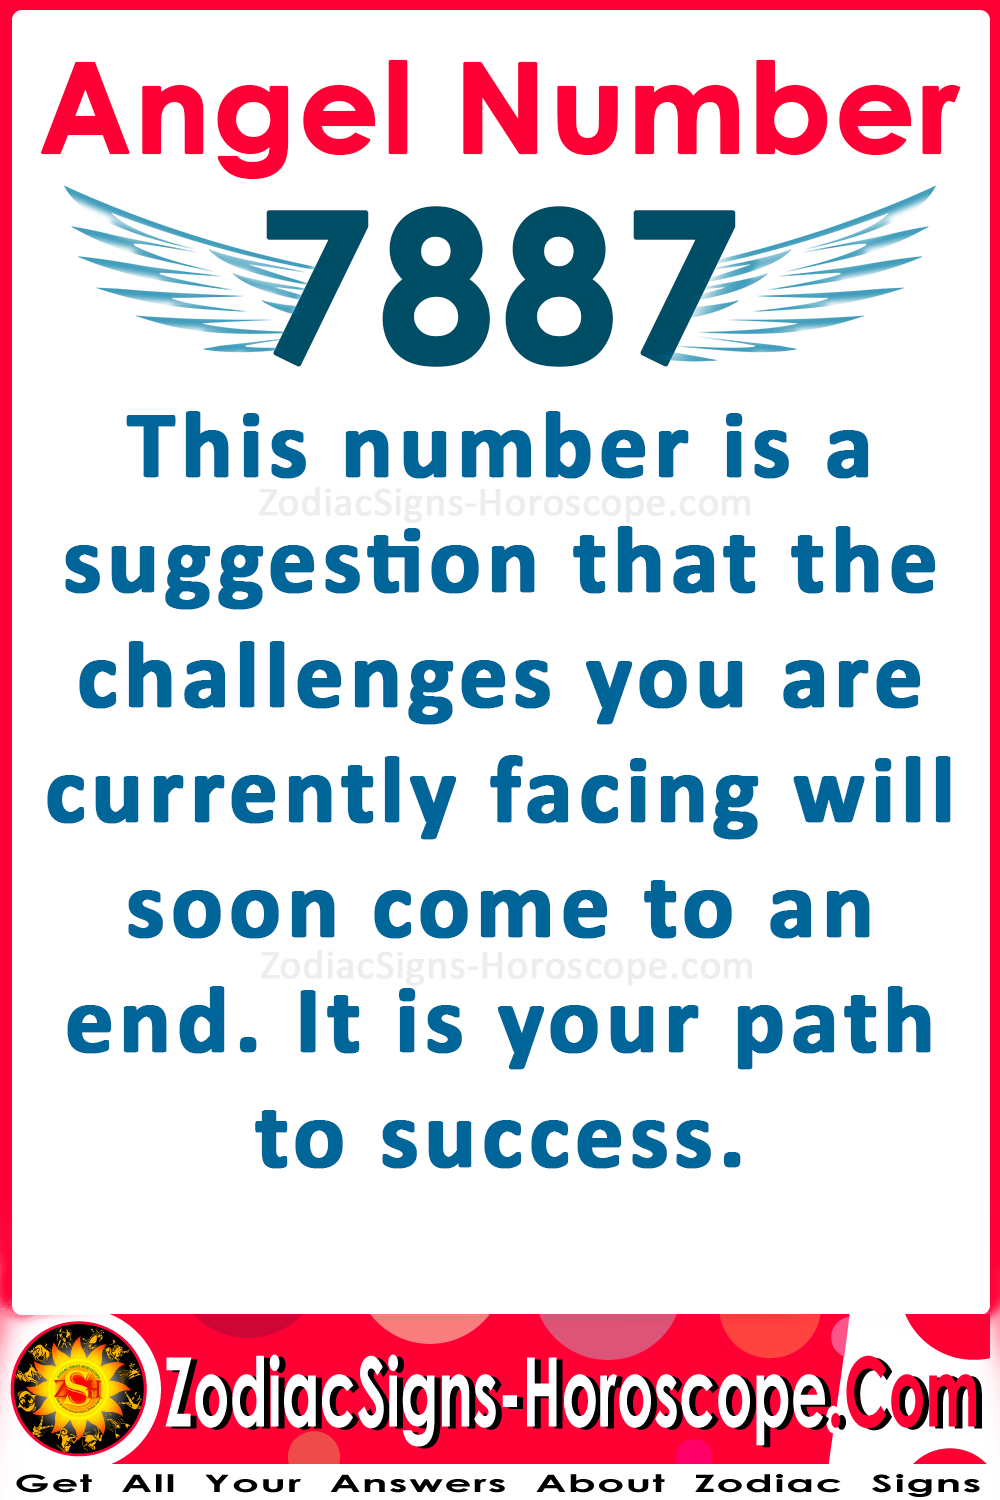 Angel Number 7887 Meaning Be Ready To Embrace Change In Your Life In 2021 How To Be Outgoing Number Meanings Angel Numbers